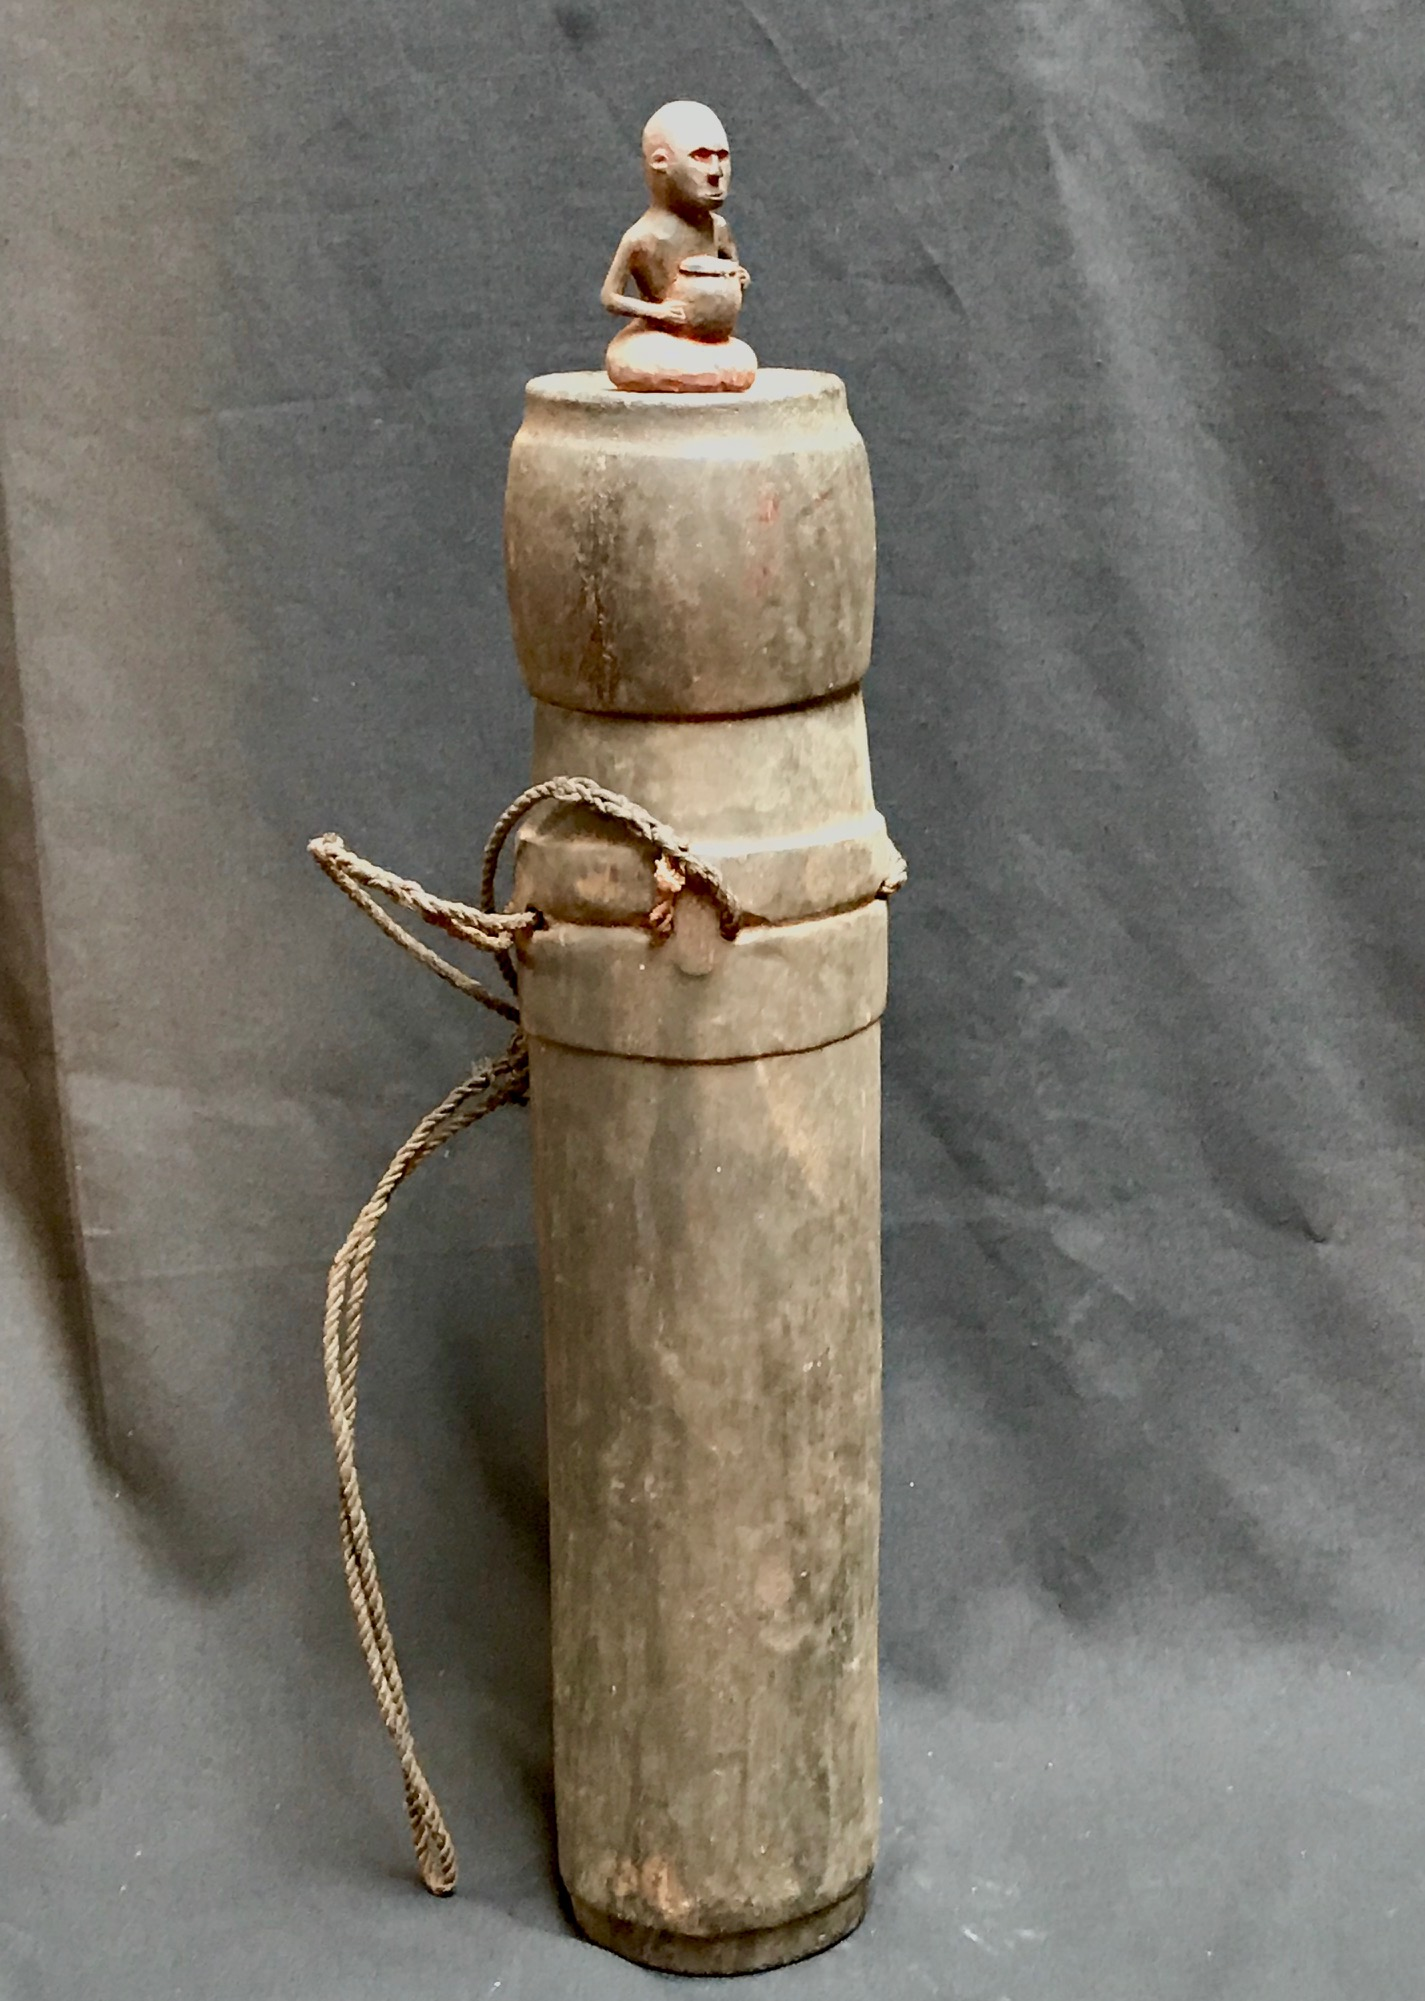 """Shaman's Medicine Jar/Container for healing herbs and substances, with carved seated figure holding a ceramic or wooden vessel. Sumba Indonesia, early 20th c., bamboo, wood, twine, pigment, 23"""" x 7"""""""